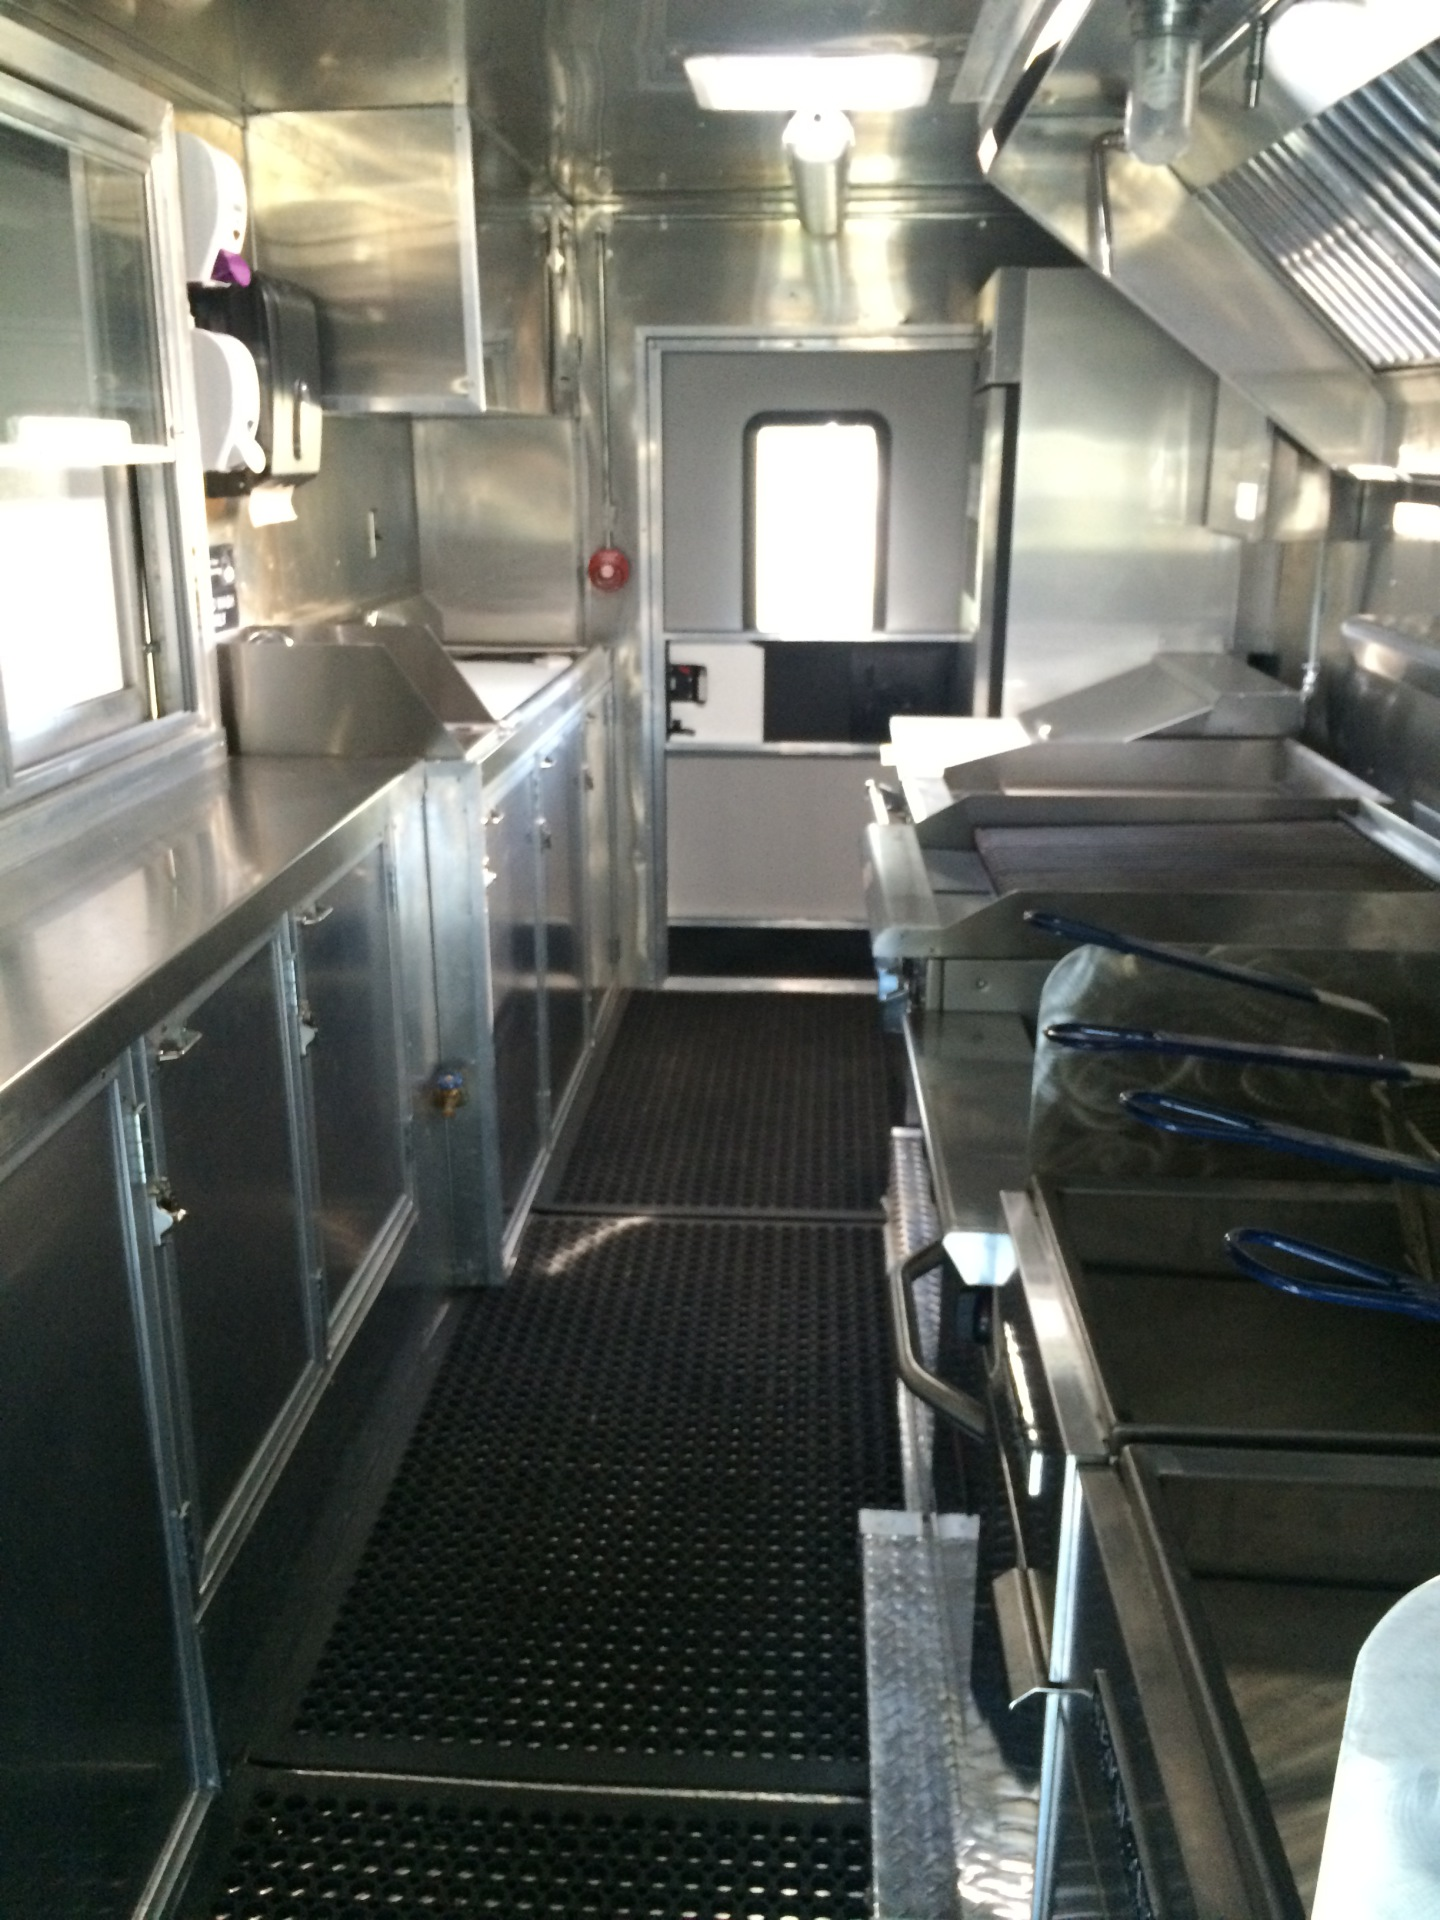 Our Gourmet Restaurant On Wheels